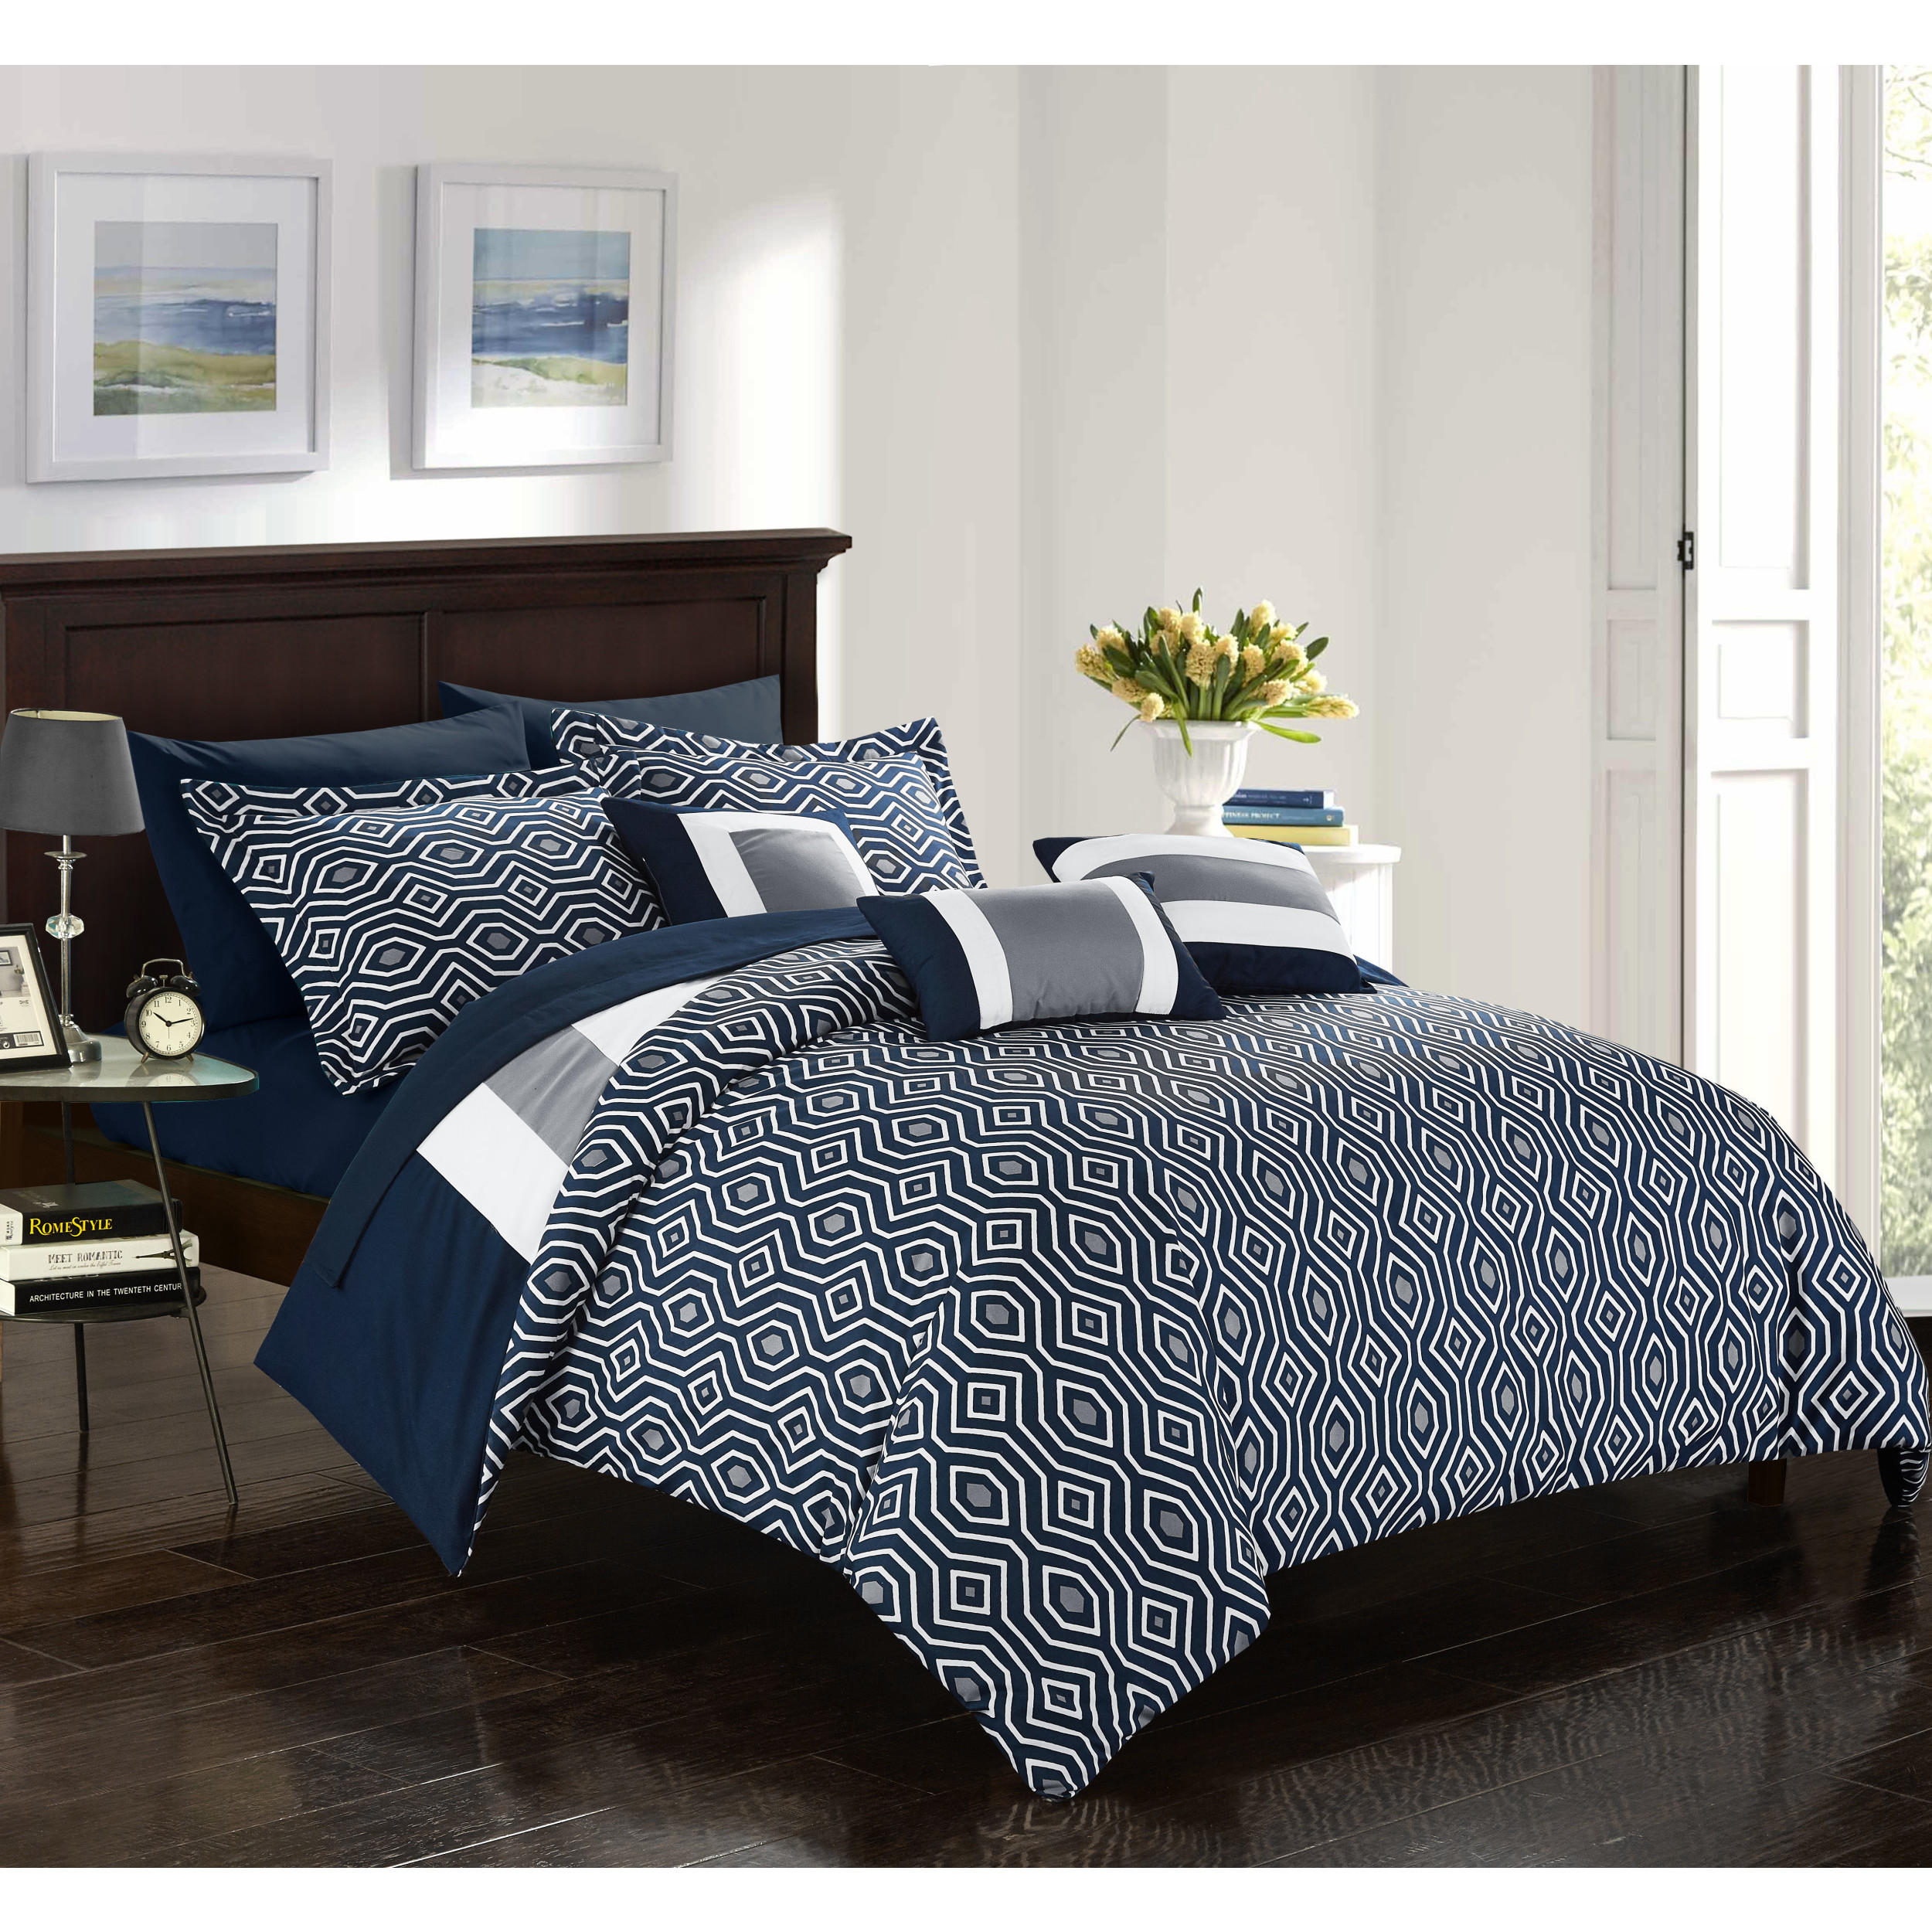 set reviews piece sets bed home comforter falcon wayfair bath pdx hotel chic